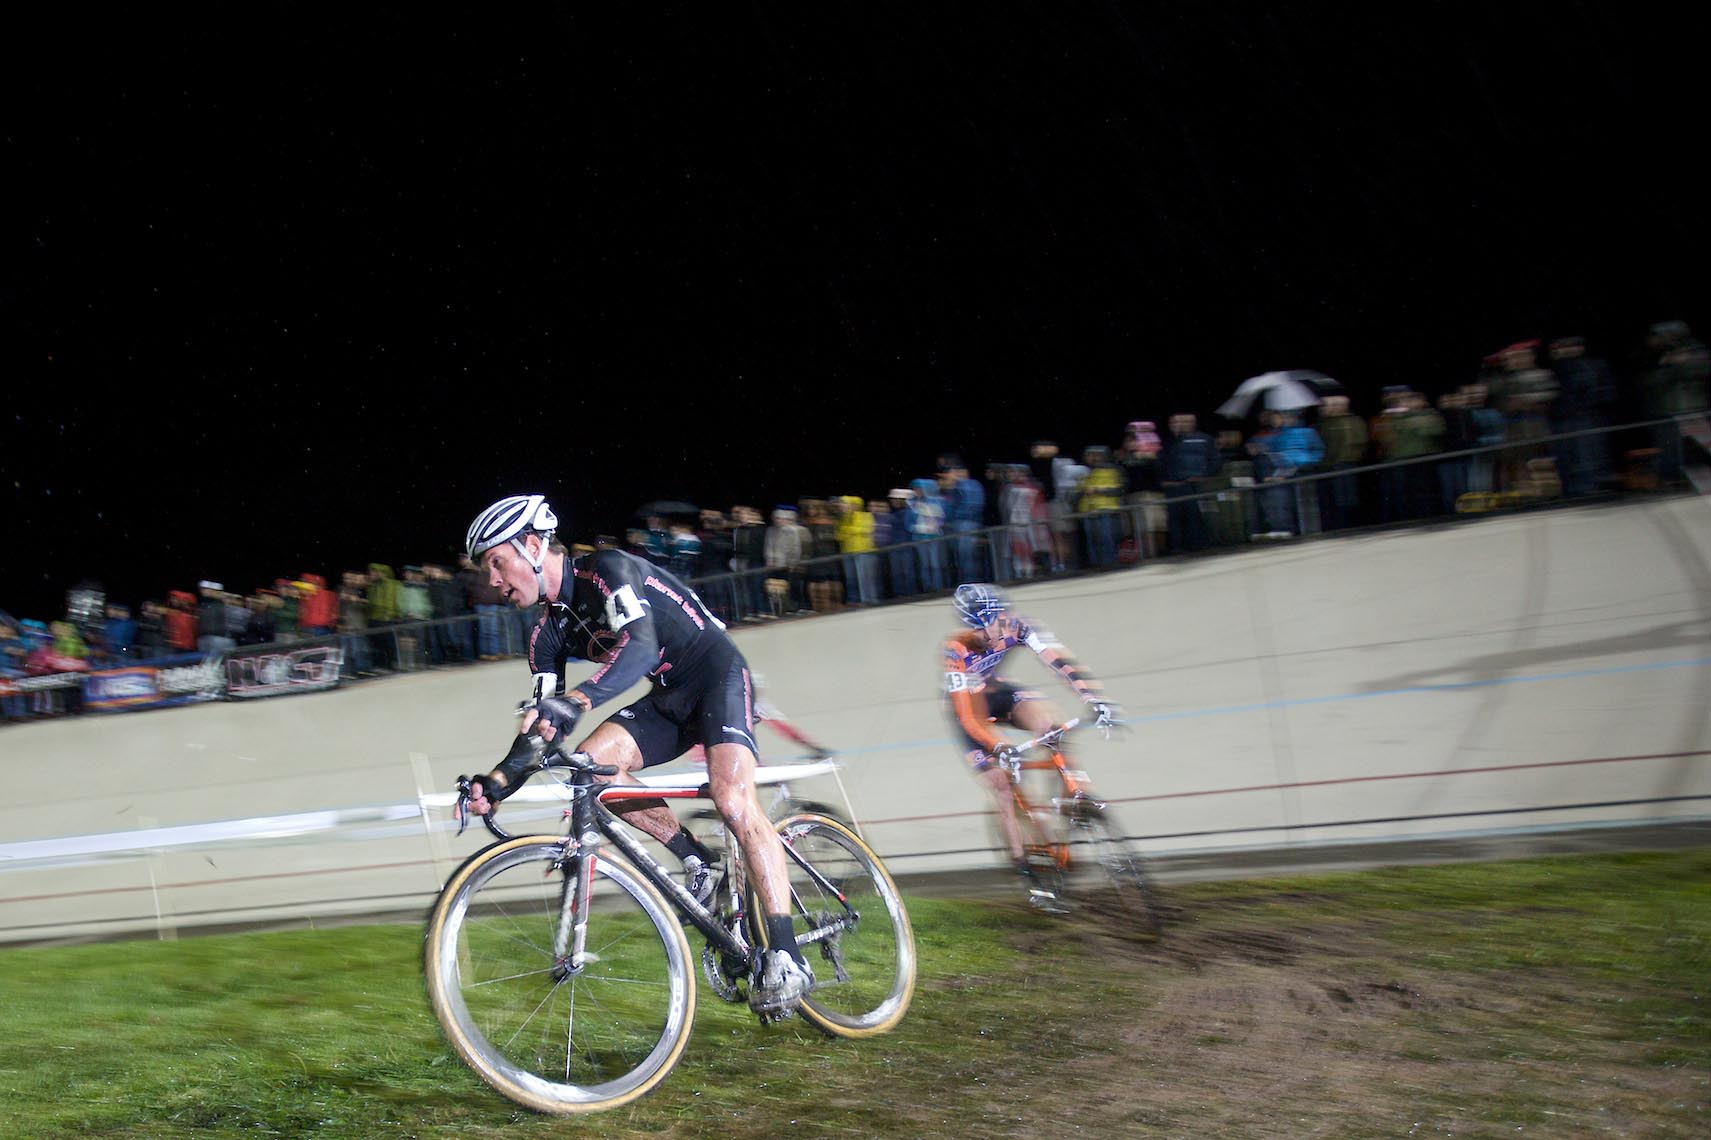 Jonathan Page rode strongly to podium in his first Star Crossed race. by Joe Sales